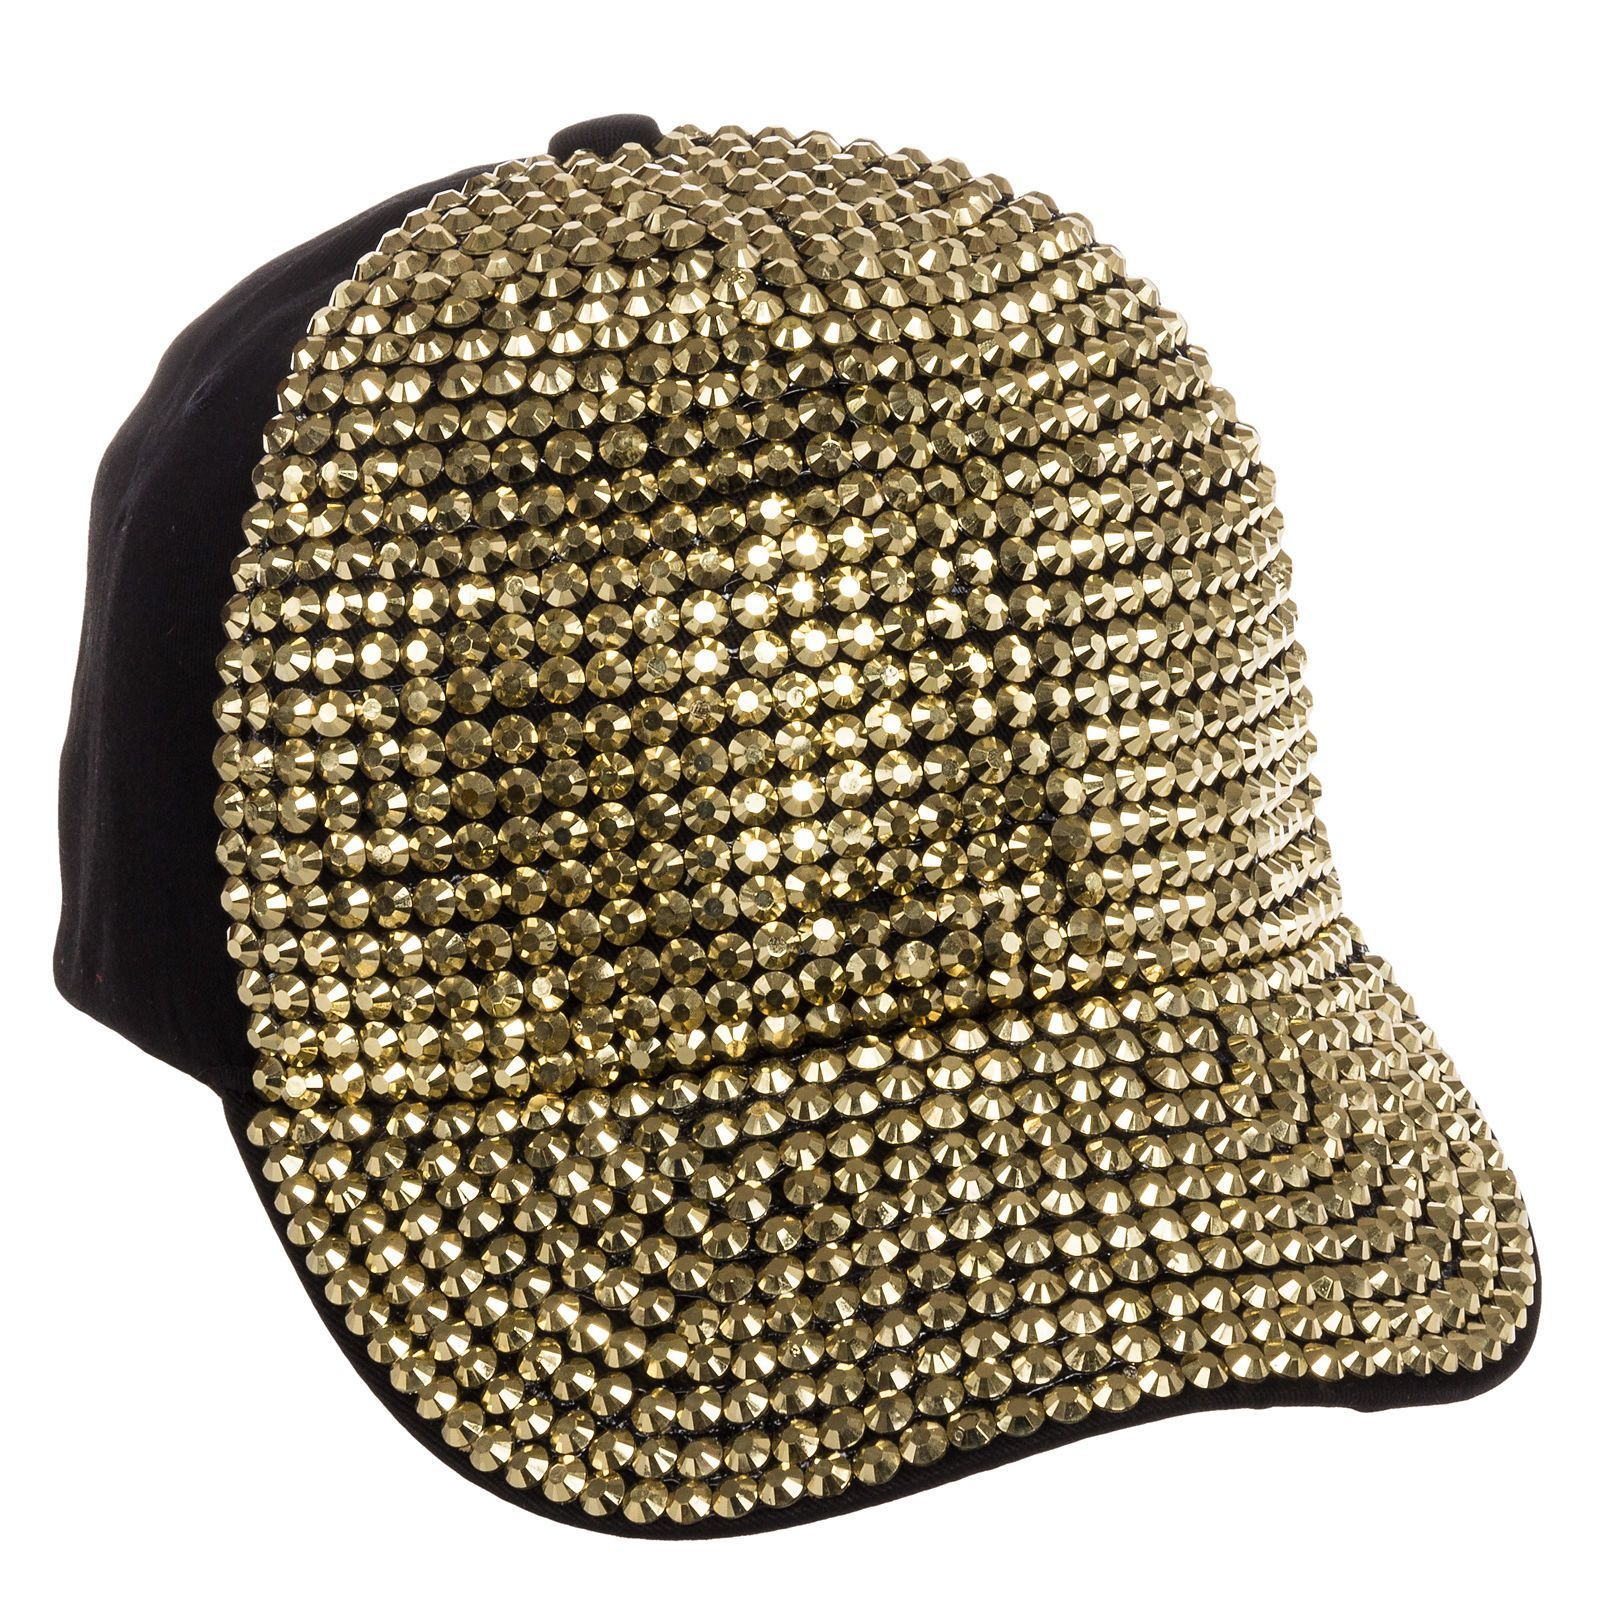 Crystal Case Black   Gold Cotton Bling Gold Rhinestone Studded Baseball Cap  Hat e286ef6224b